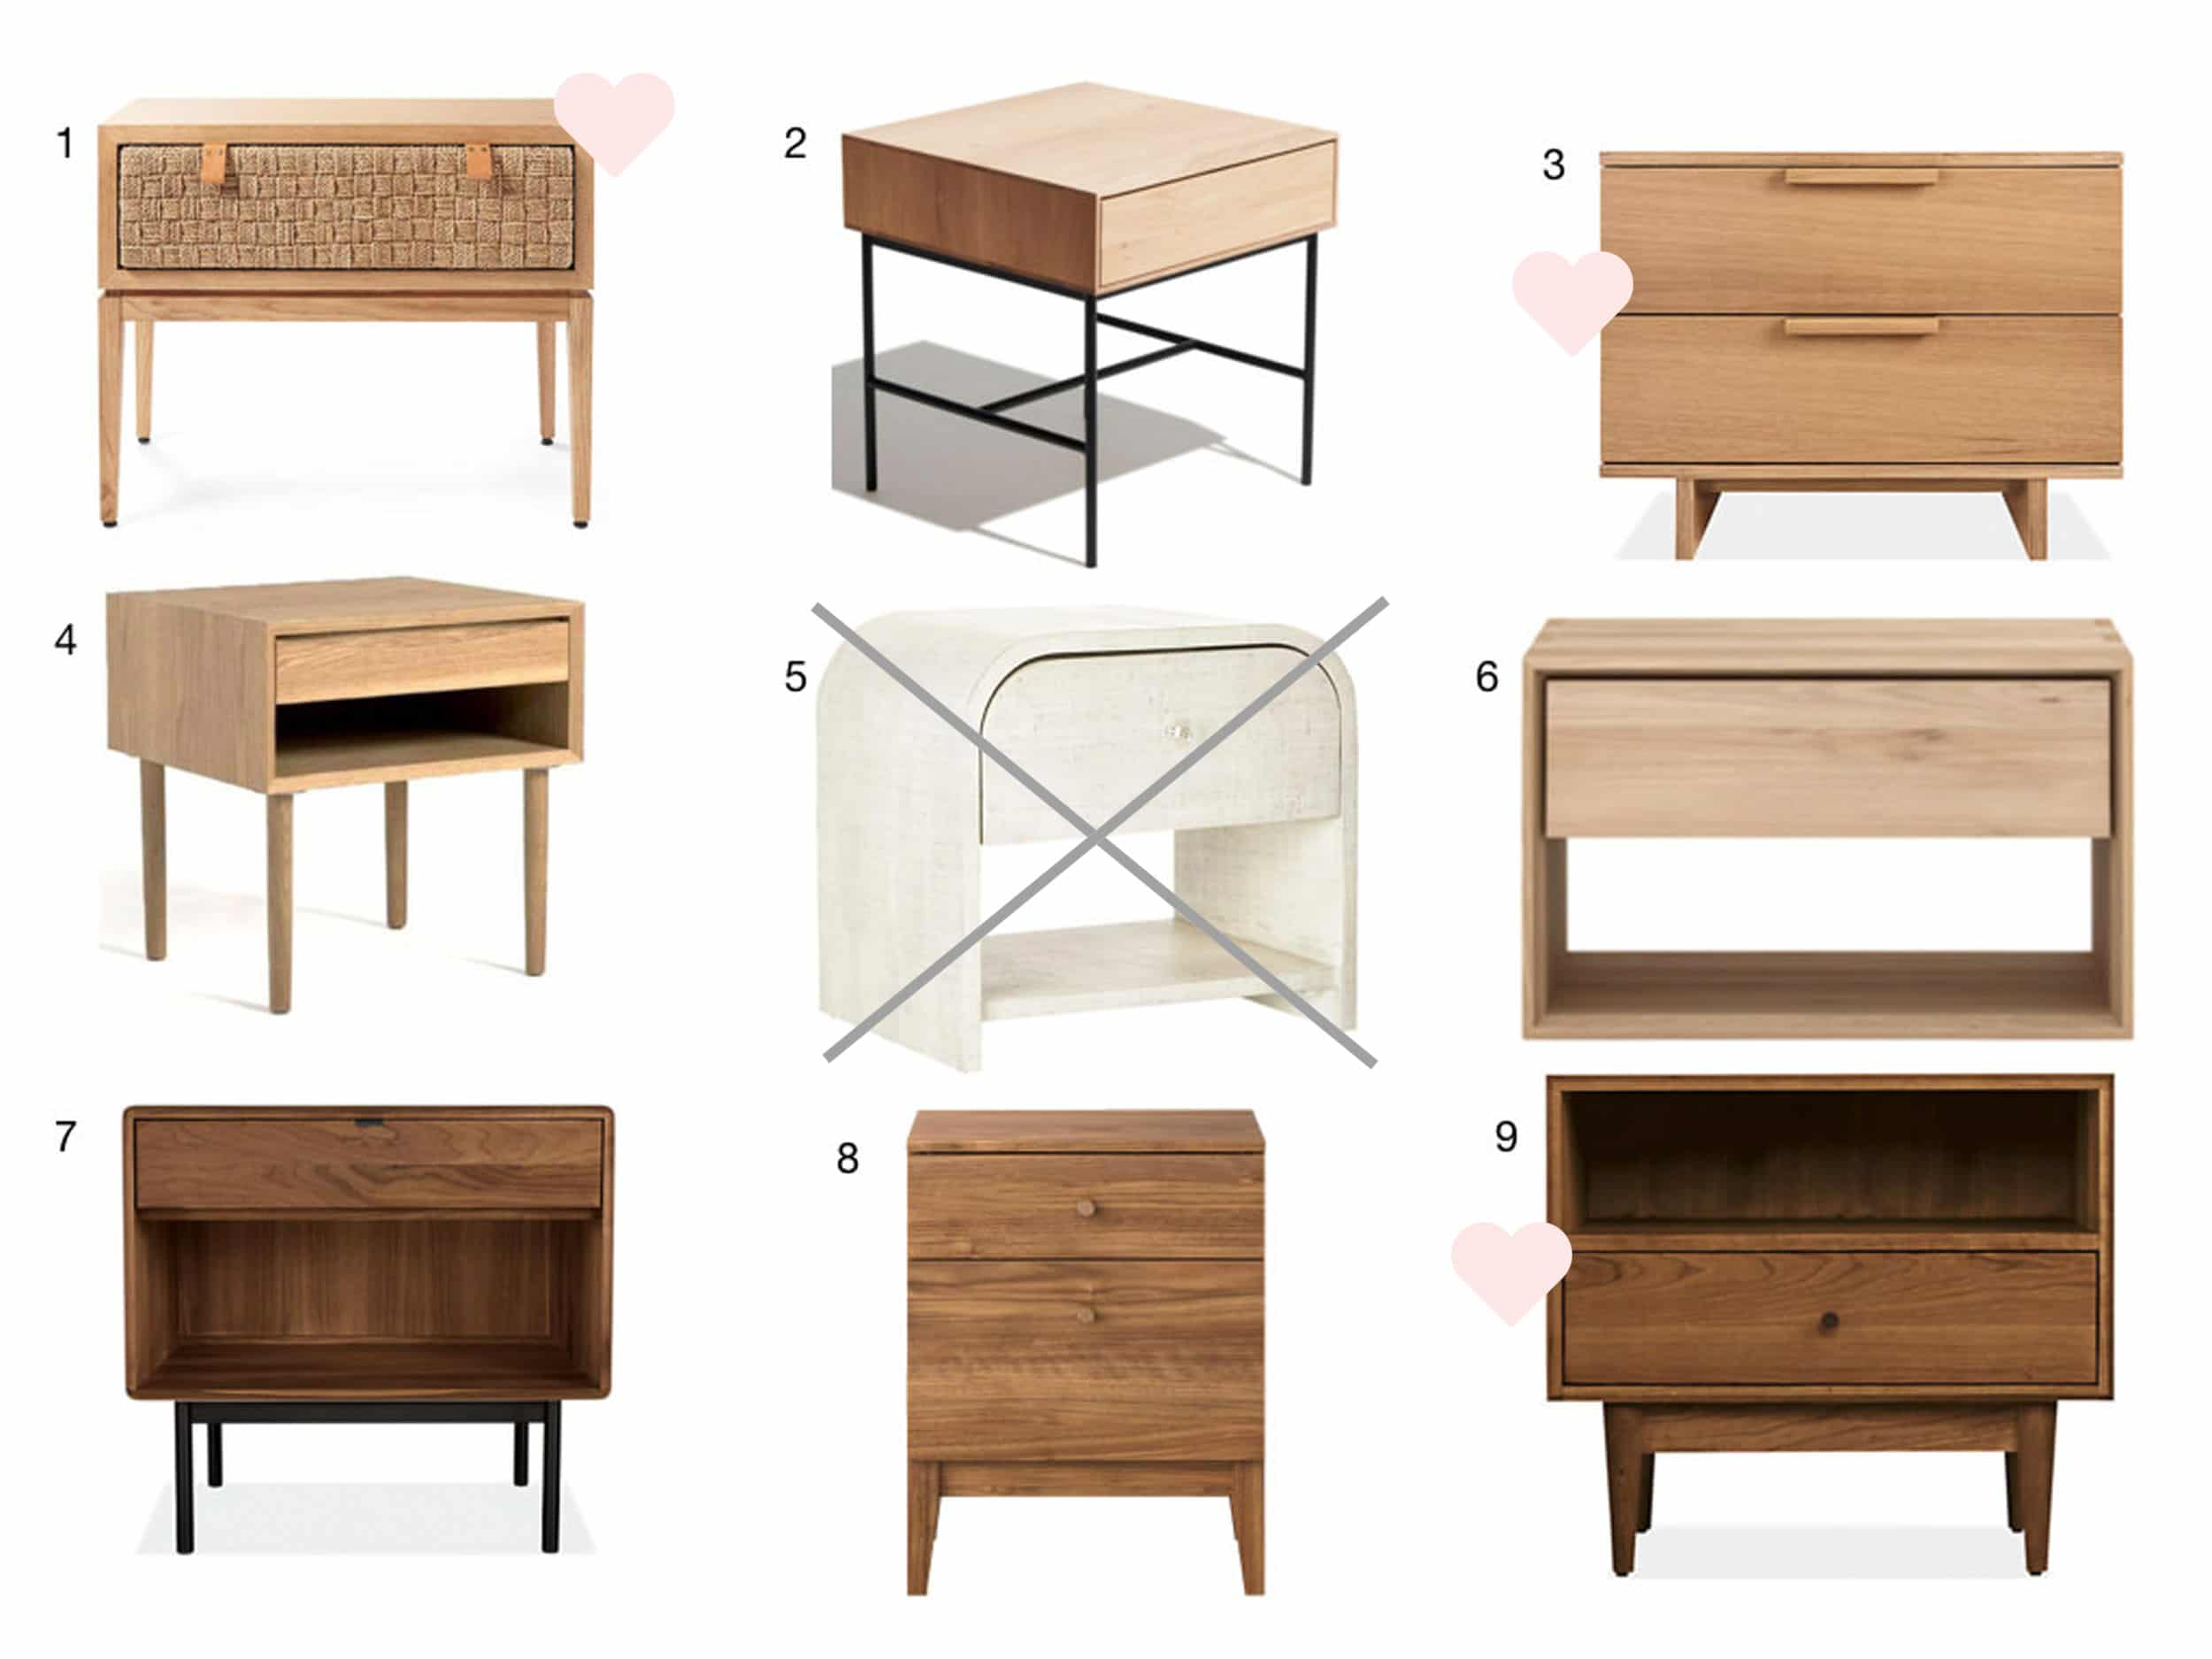 Velux Furniture Options With Hearts 4